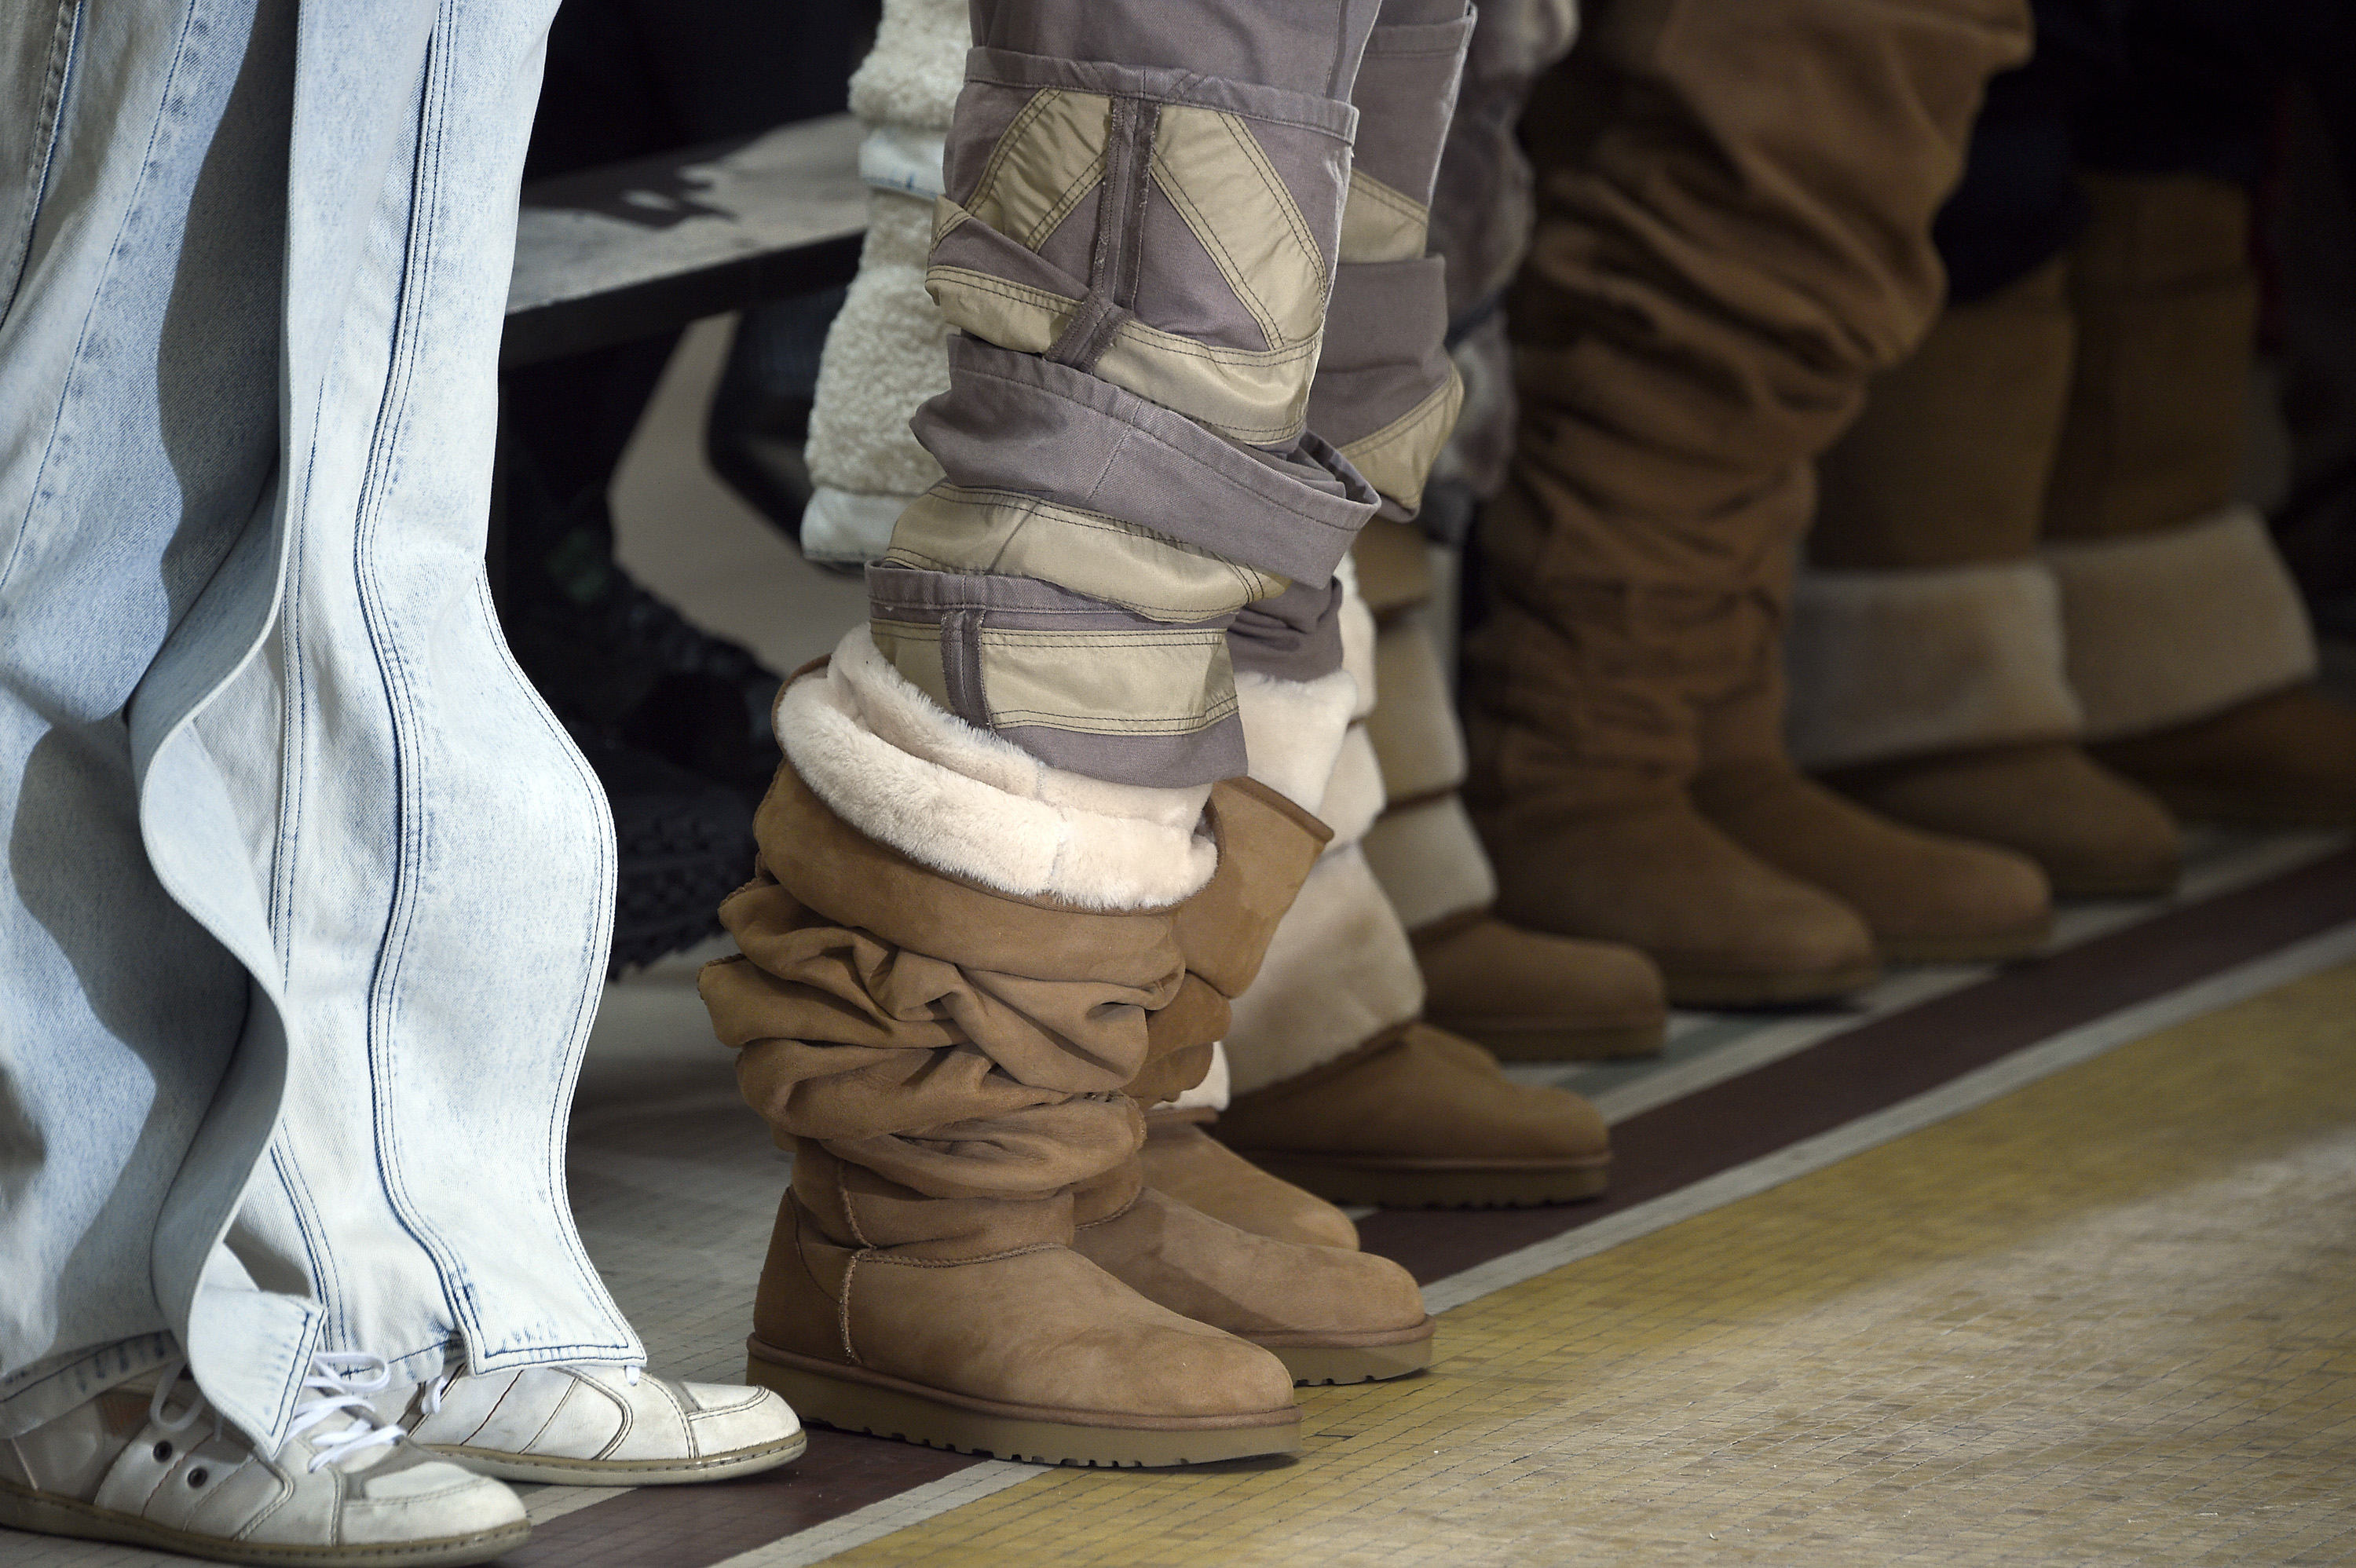 85f0afe5587 Twitter reacts: Are these the ugliest boots ever? - NZ Herald